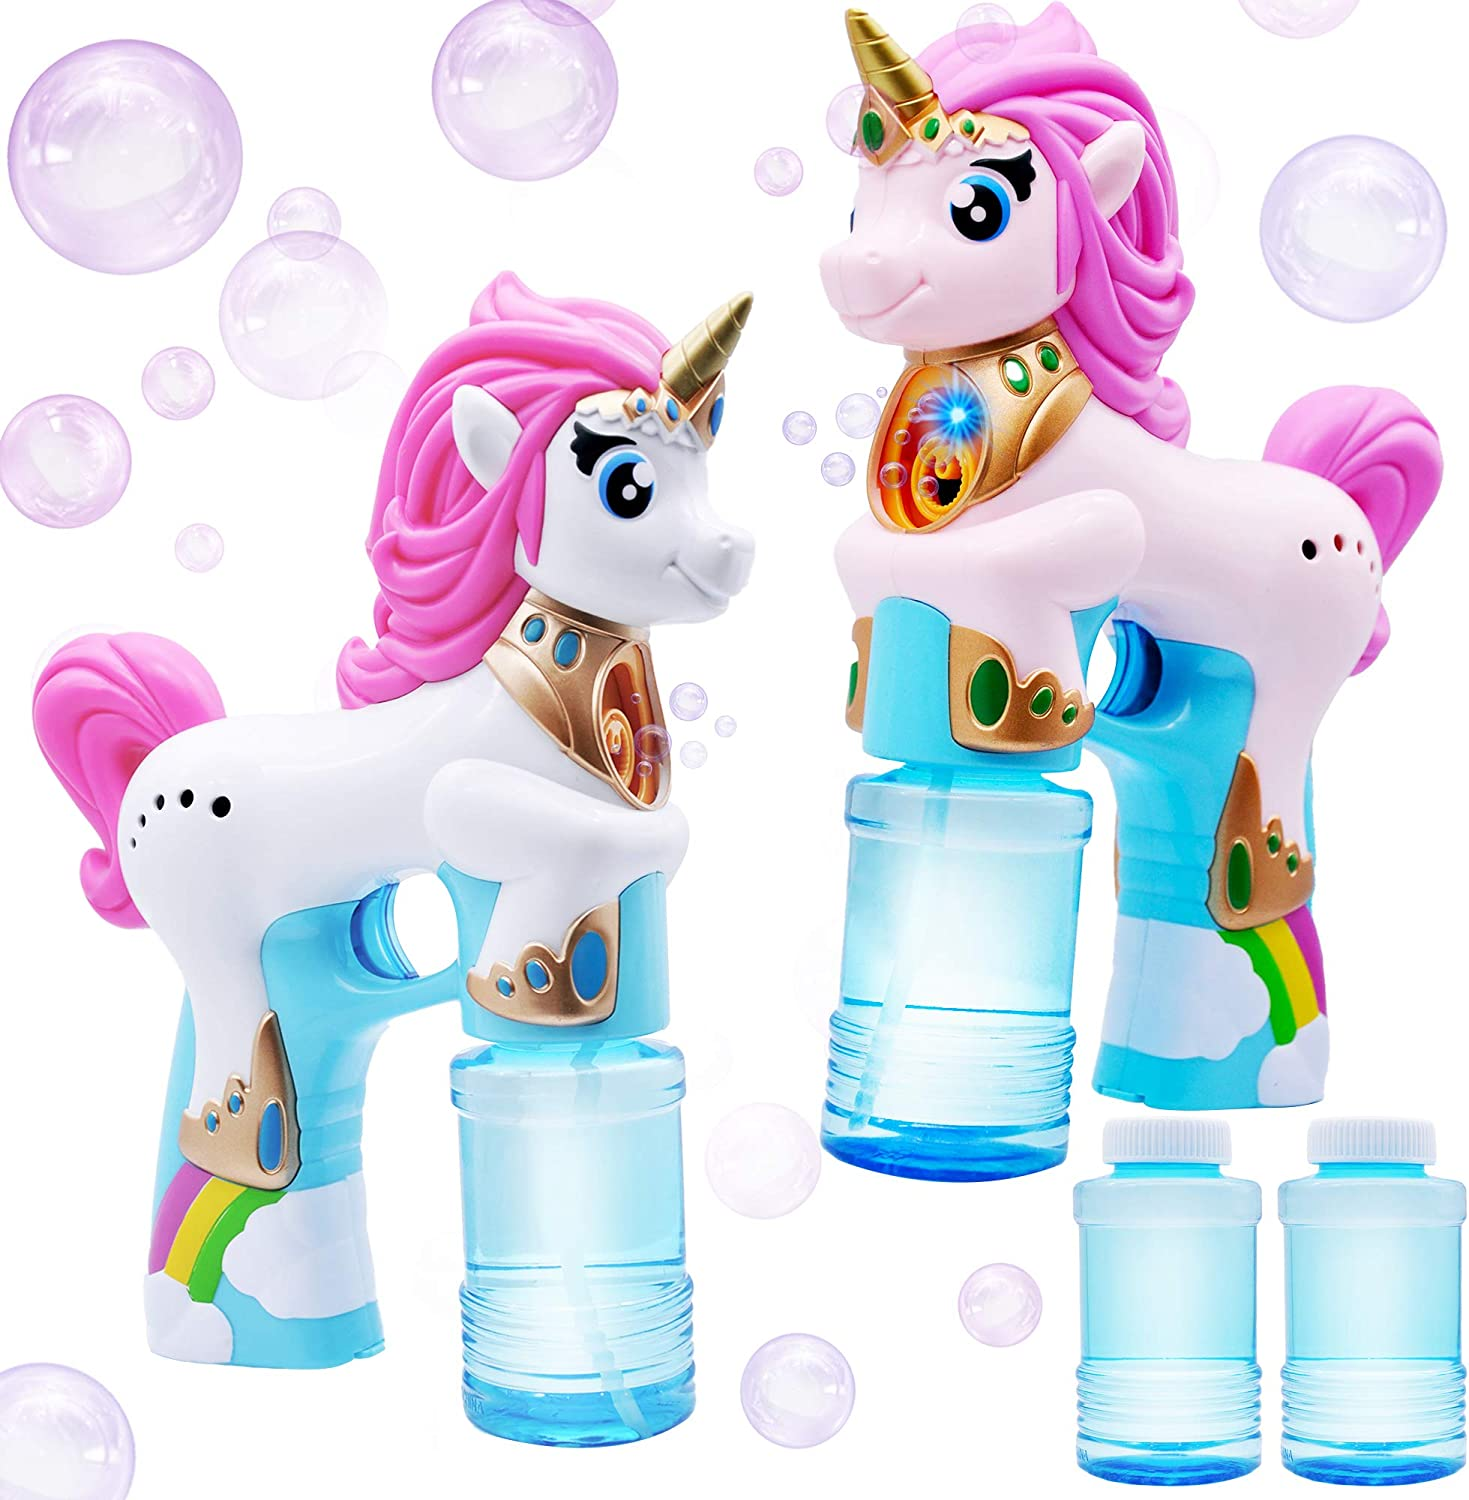 JOYIN 2 Colored Automatic Unicorn Bubble Blaster Guns with 4 Bubble Solutions (4oz) for Kids, Outdoor Summer Fun, Party Favors, Summer and Birthday Party